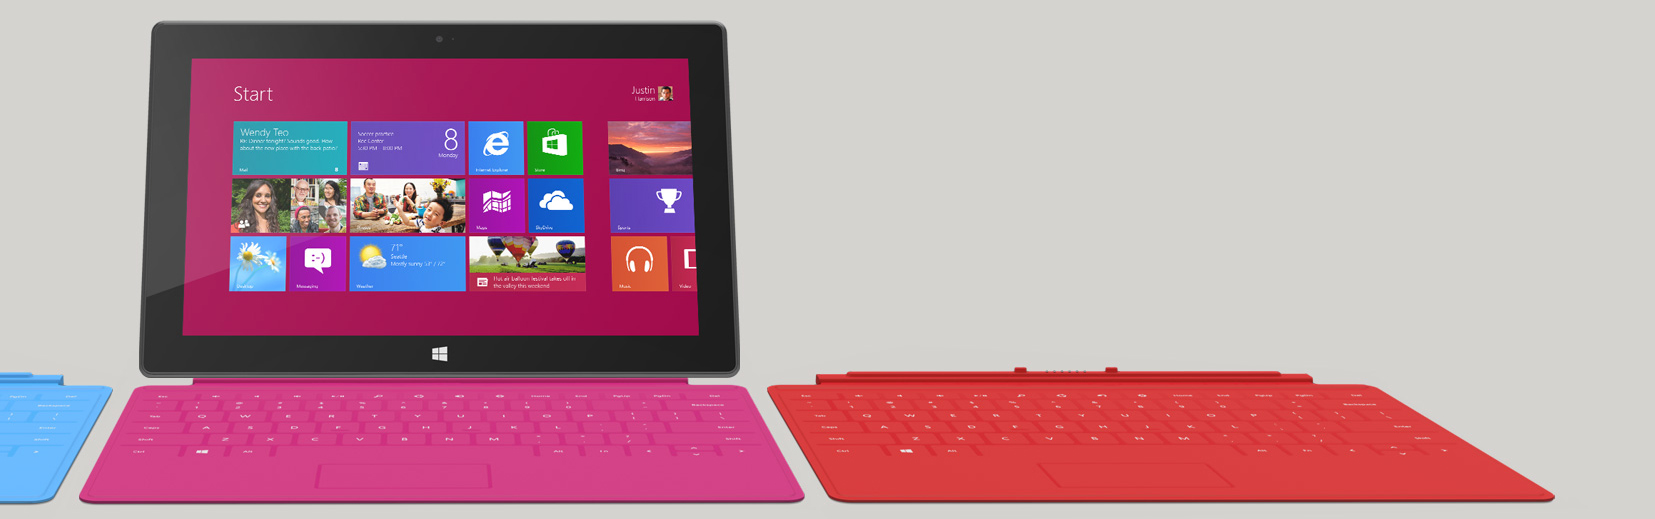 Picture of the Microsoft Surface with a magenta touch cover